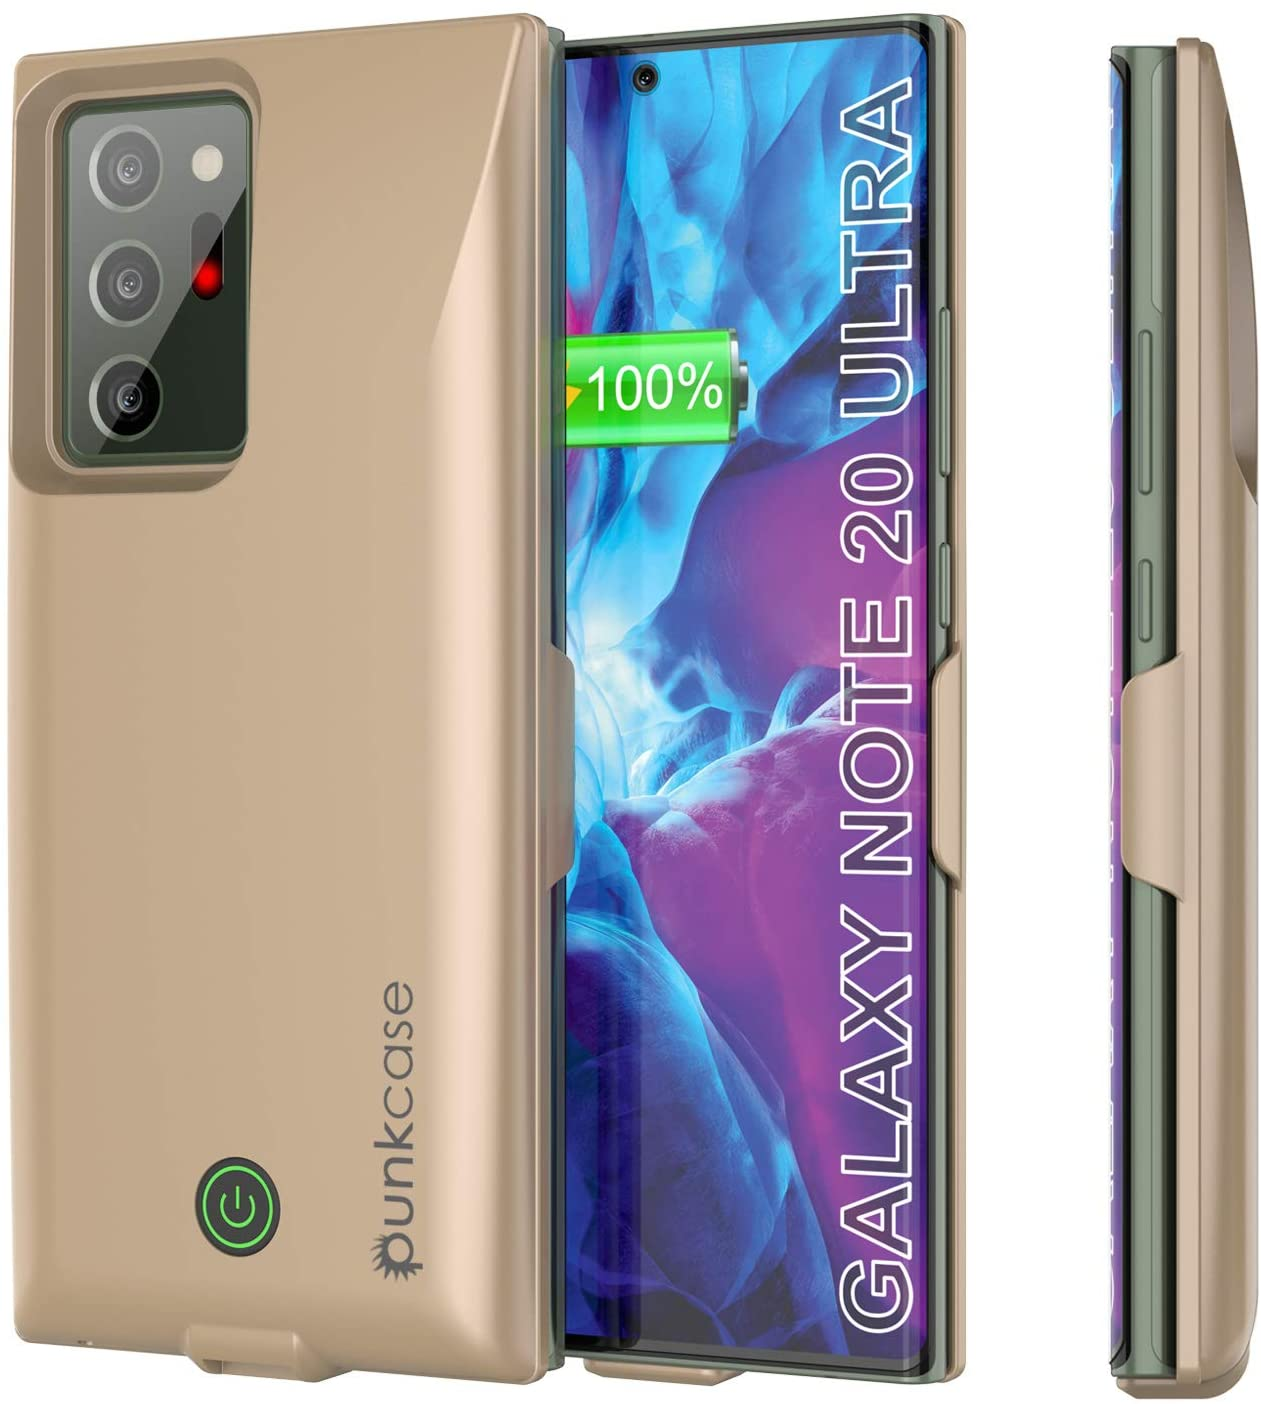 Galaxy Note 20 Ultra 6000mAH Battery Charger PunkJuice 2.0 Slim Case [Gold]